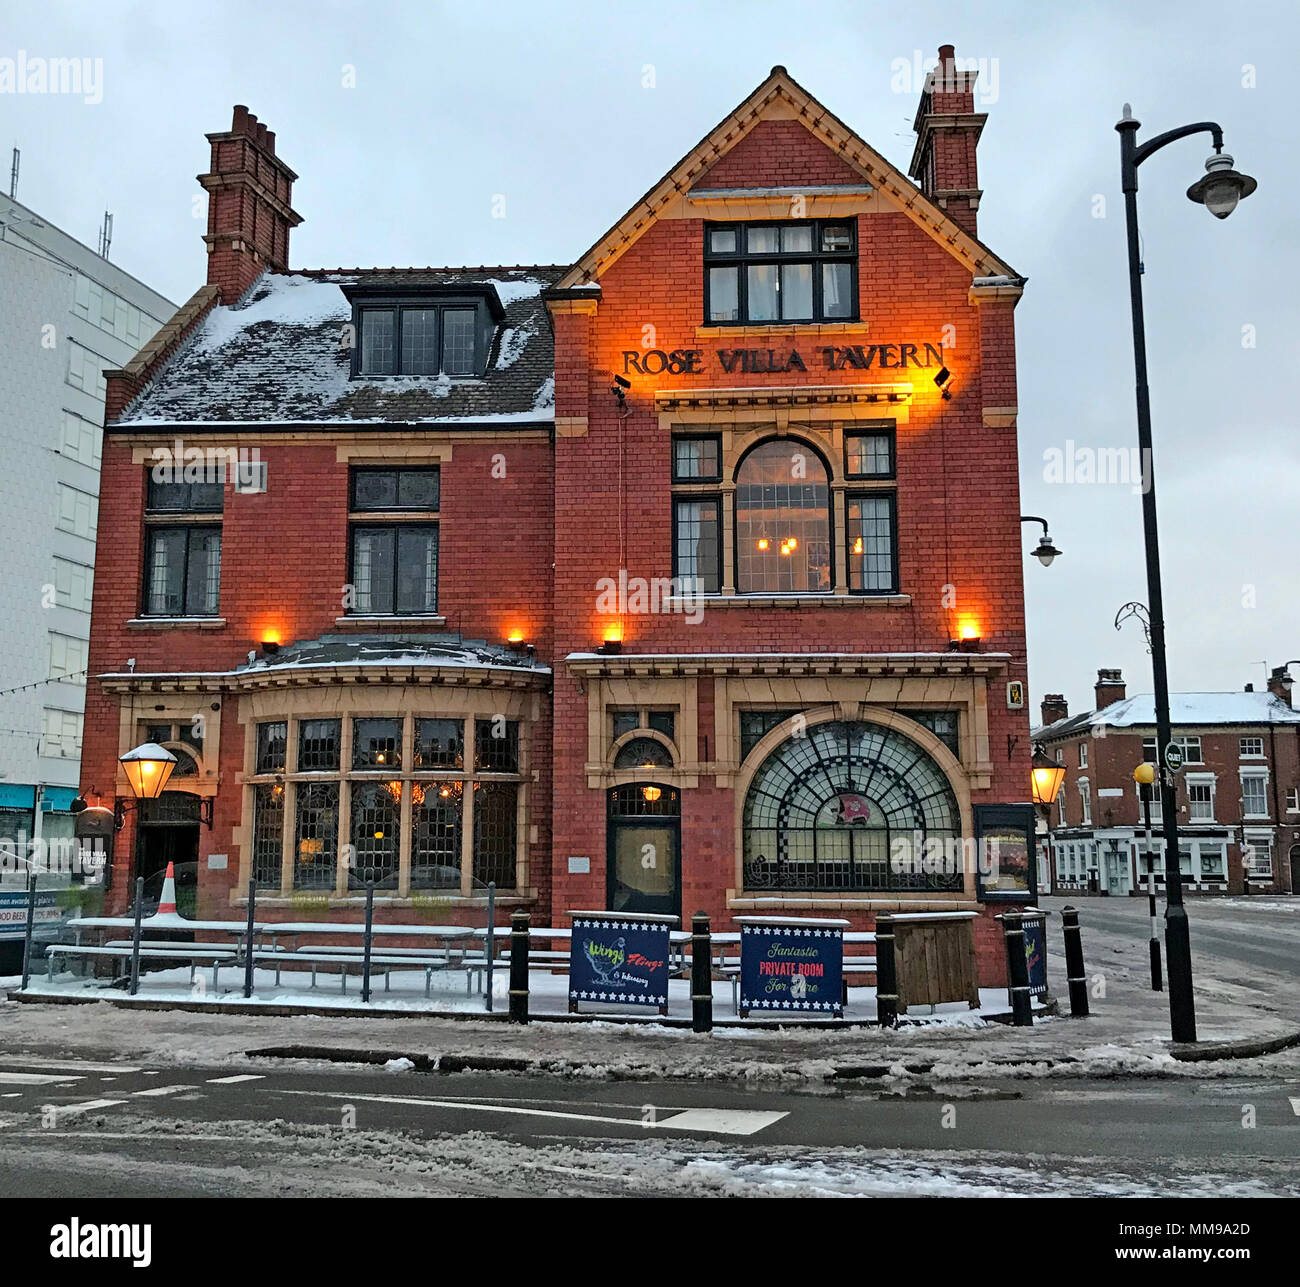 GoTonysmith,@HotpixUK,homely,in the snow warm,city centre in the snow,boozer,old fashioned,craft ales,snowy scene,scene,snowy,Birmingham,snow,the,england,brick,street,West Midlands,traditional,winter,drink,at night,night,dusk,centre,city,Jewellery Quarter,pub,bar,Rose Villa,172 Warstone Ln,B18 6JW,B18,UK,tiled,tiling,pubs